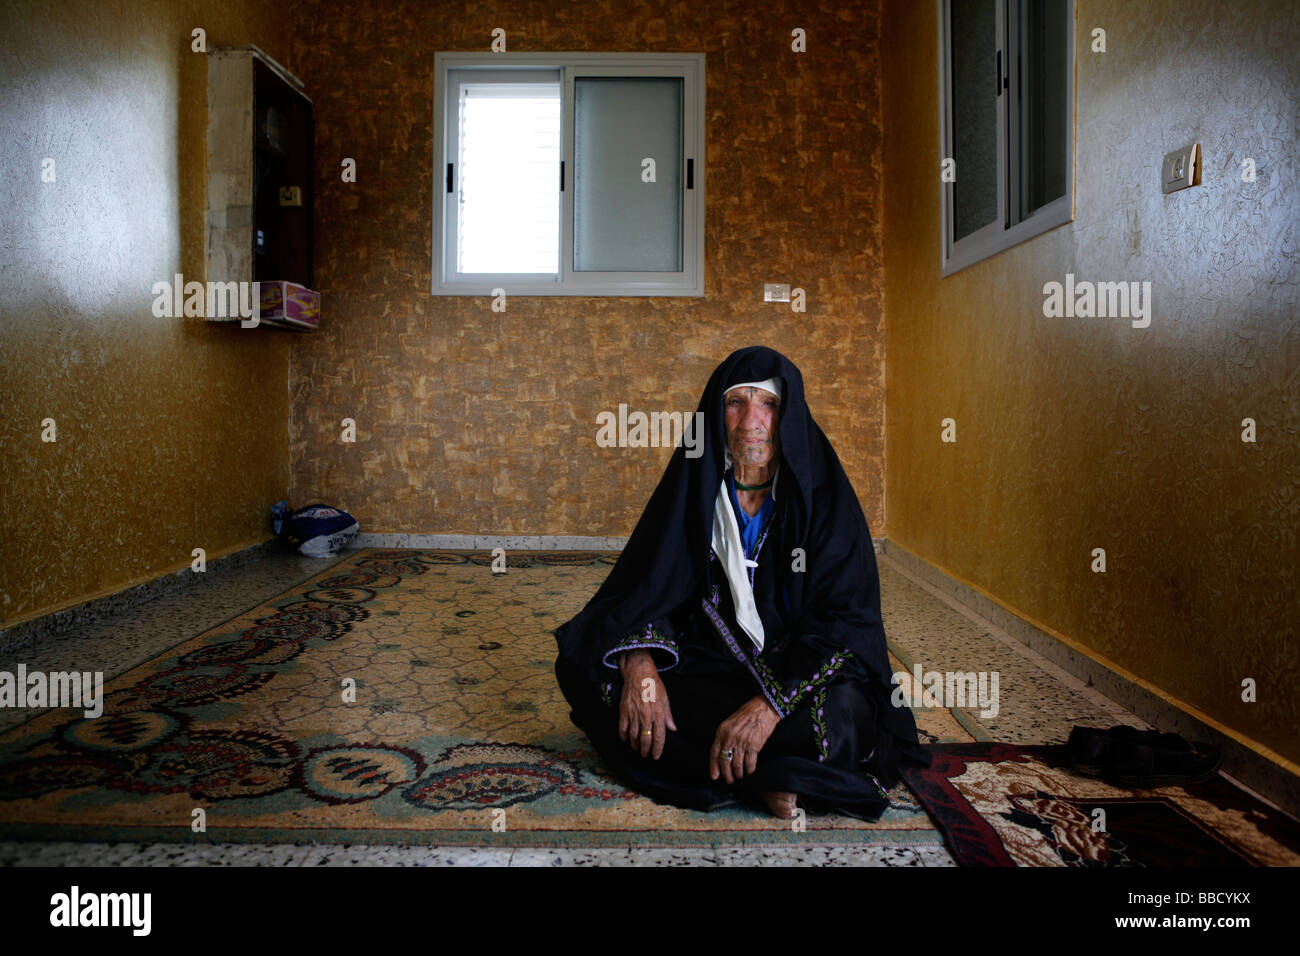 An elderly Bedouin woman sits in the living room of a house in the Bedouin town of Rahat. Negev desert, Israel. - Stock Image